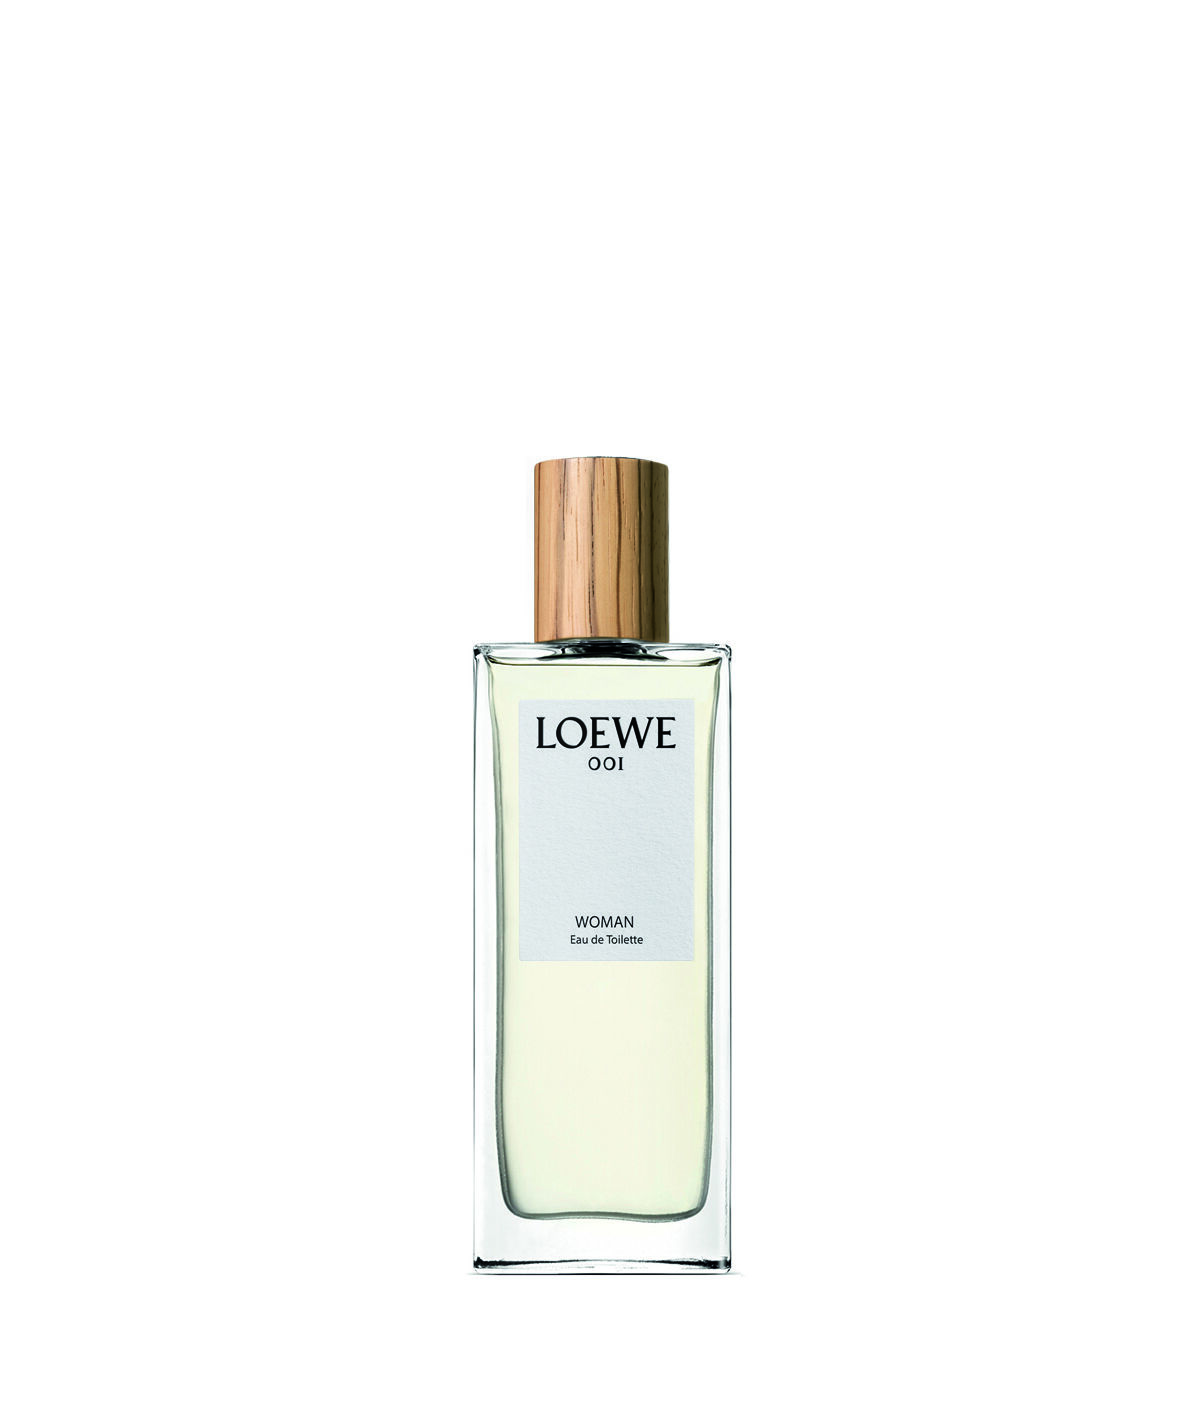 LOEWE Loewe 001 Woman Edt 50Ml Sin Color front